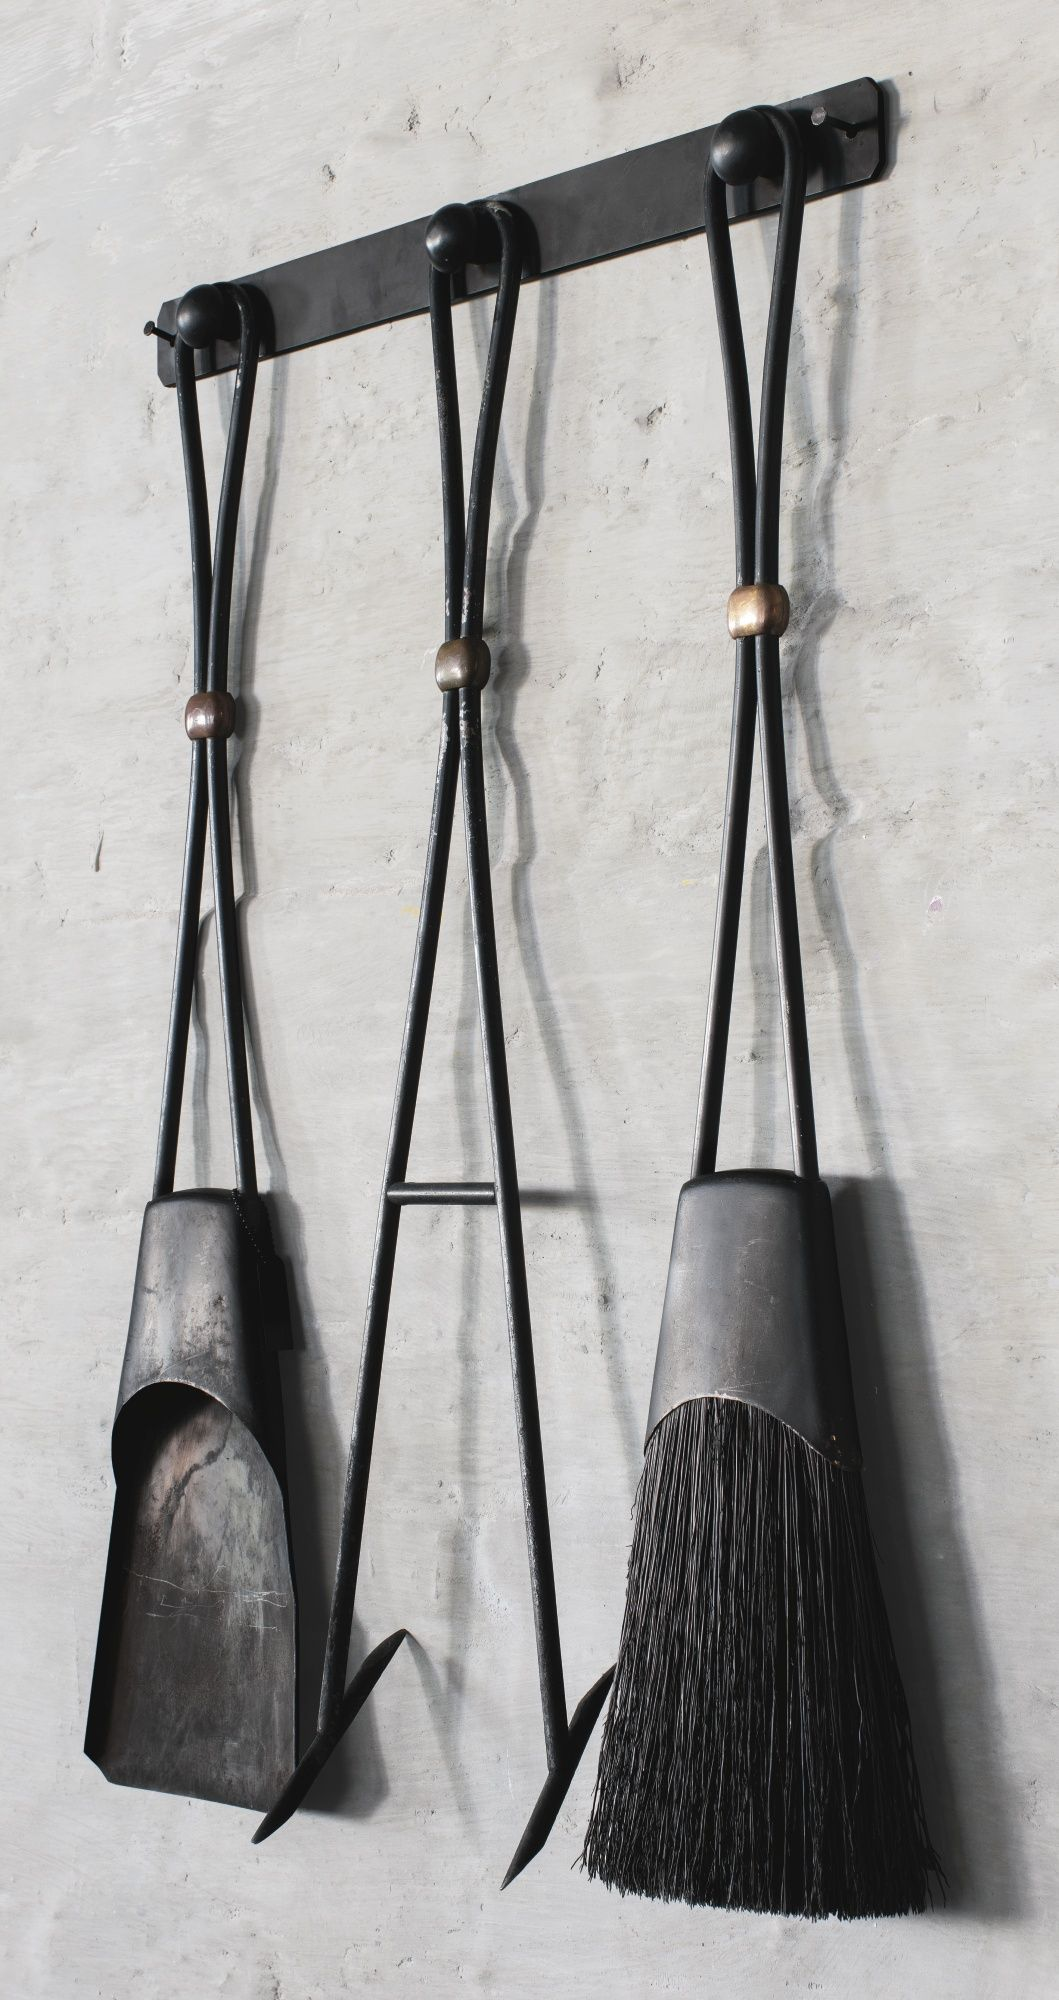 jens quistgaard fireplace tools for dansk c1960 objected